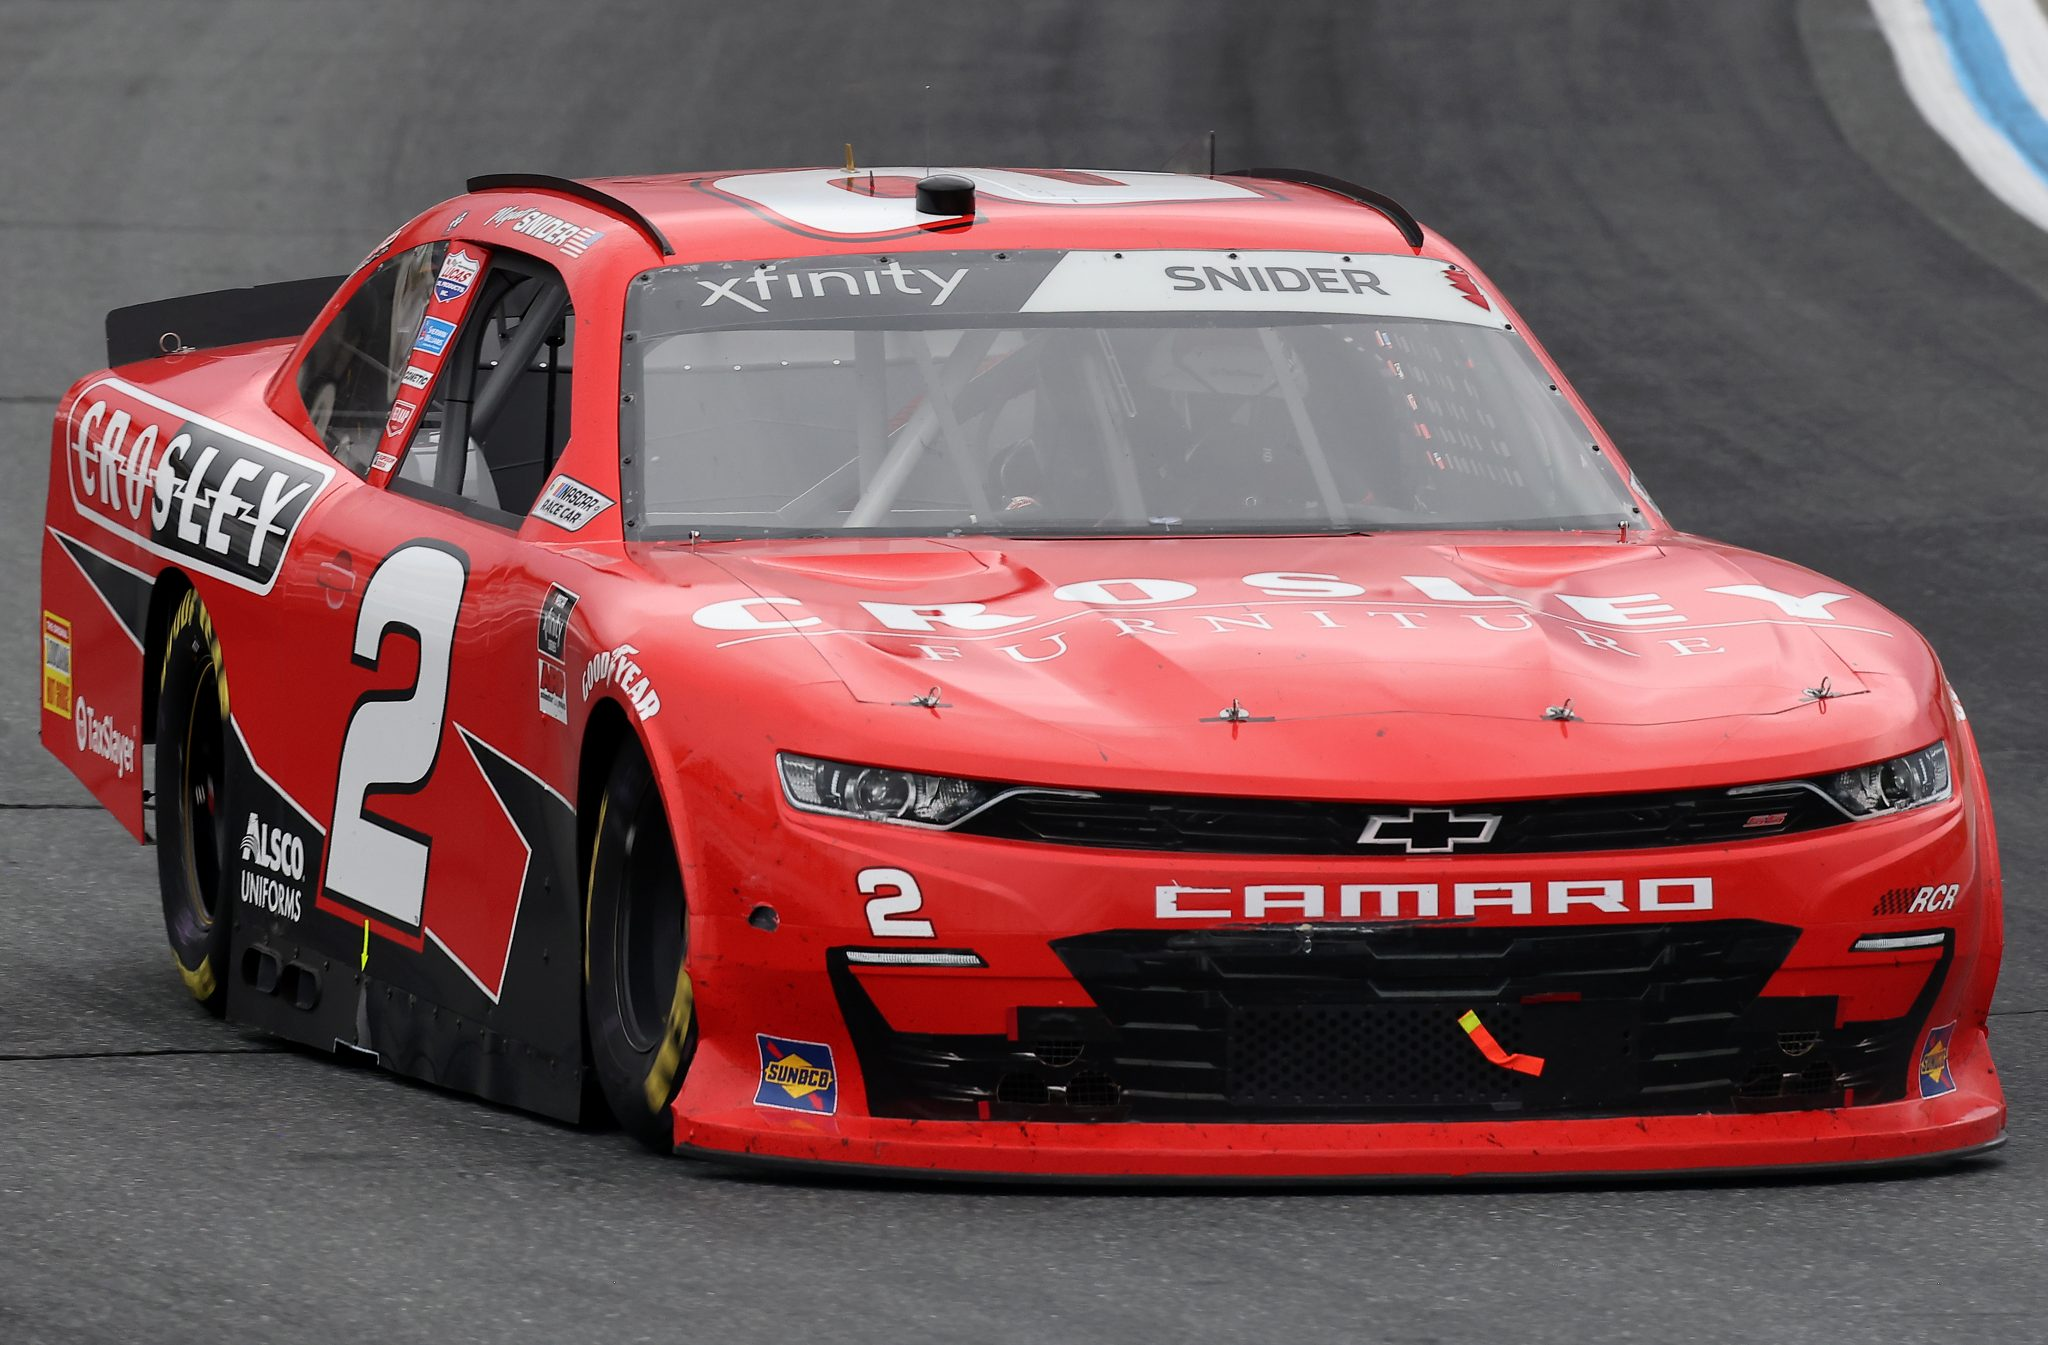 LOUDON, NEW HAMPSHIRE - JULY 17: Myatt Snider, driver of the #2 Crosley Furniture Chevrolet, drives during the NASCAR Xfinity Series Ambetter Get Vaccinated 200 at New Hampshire Motor Speedway on July 17, 2021 in Loudon, New Hampshire. (Photo by James Gilbert/Getty Images) | Getty Images